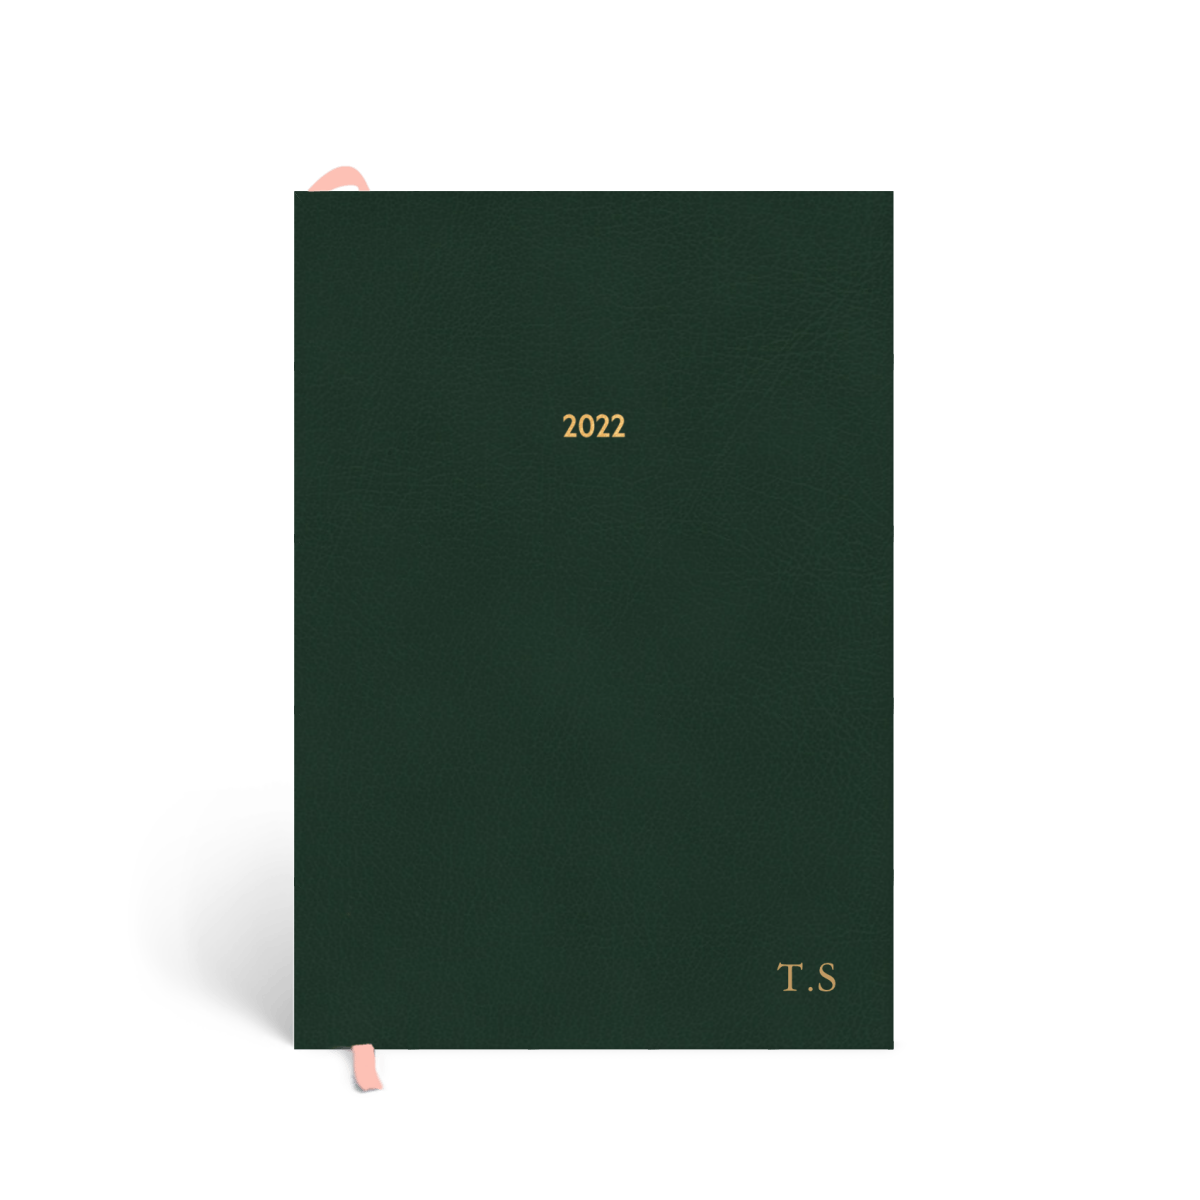 Https%3a%2f%2fwww.papier.com%2fproduct image%2f93704%2f112%2fpine green 2020 23437 front 1573232672.png?ixlib=rb 1.1